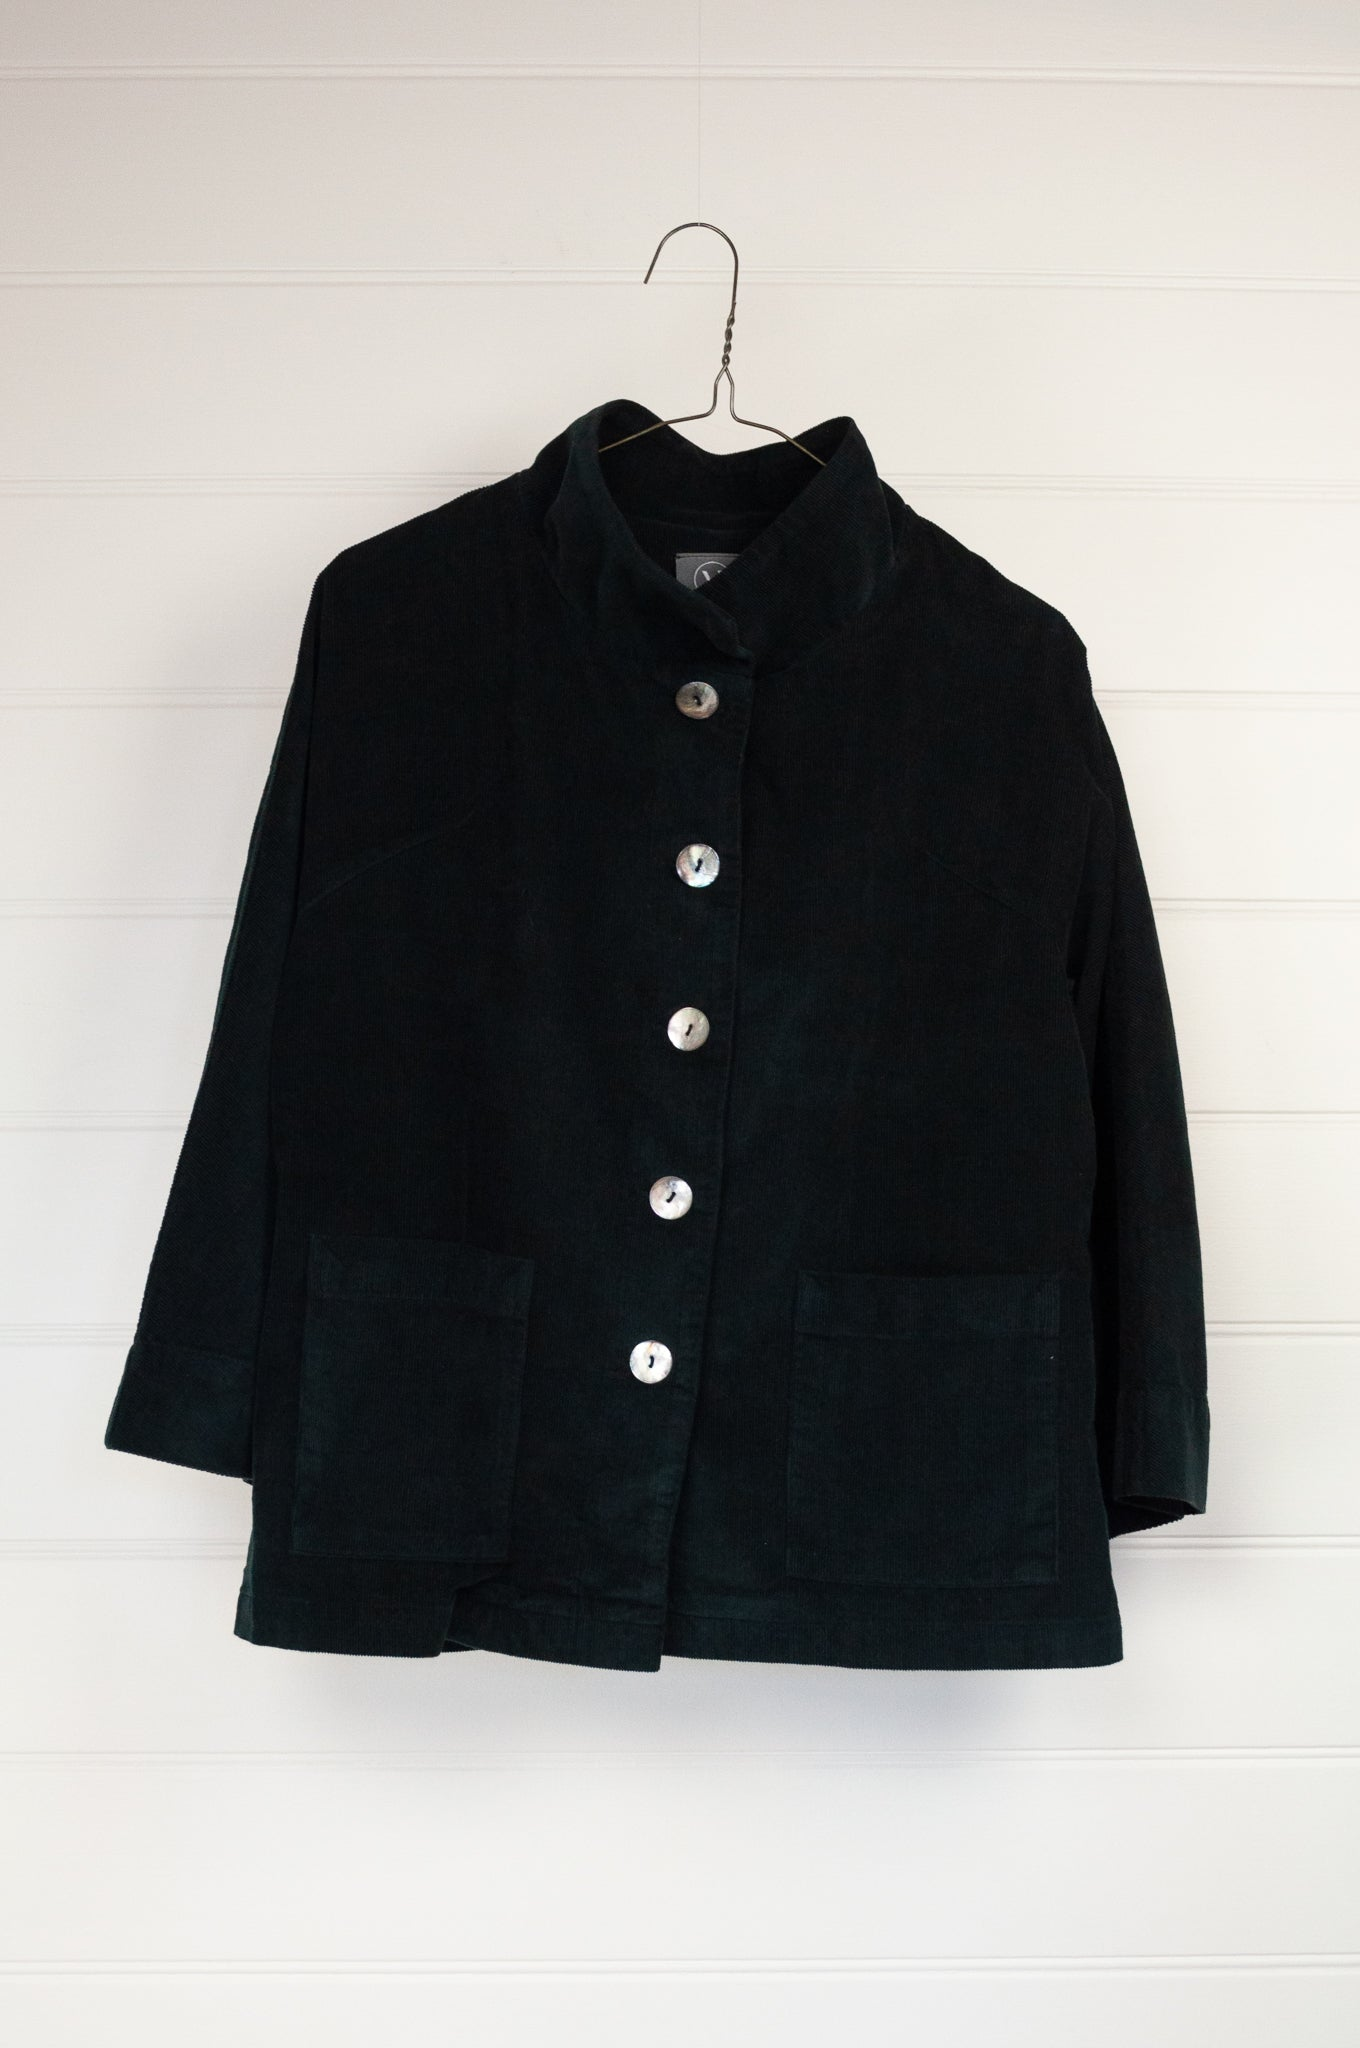 Valia Fitzroy jacket, ethically made in Melbourne from fine black cotton corduroy, shell buttons, funnel collar and front patch pockets.